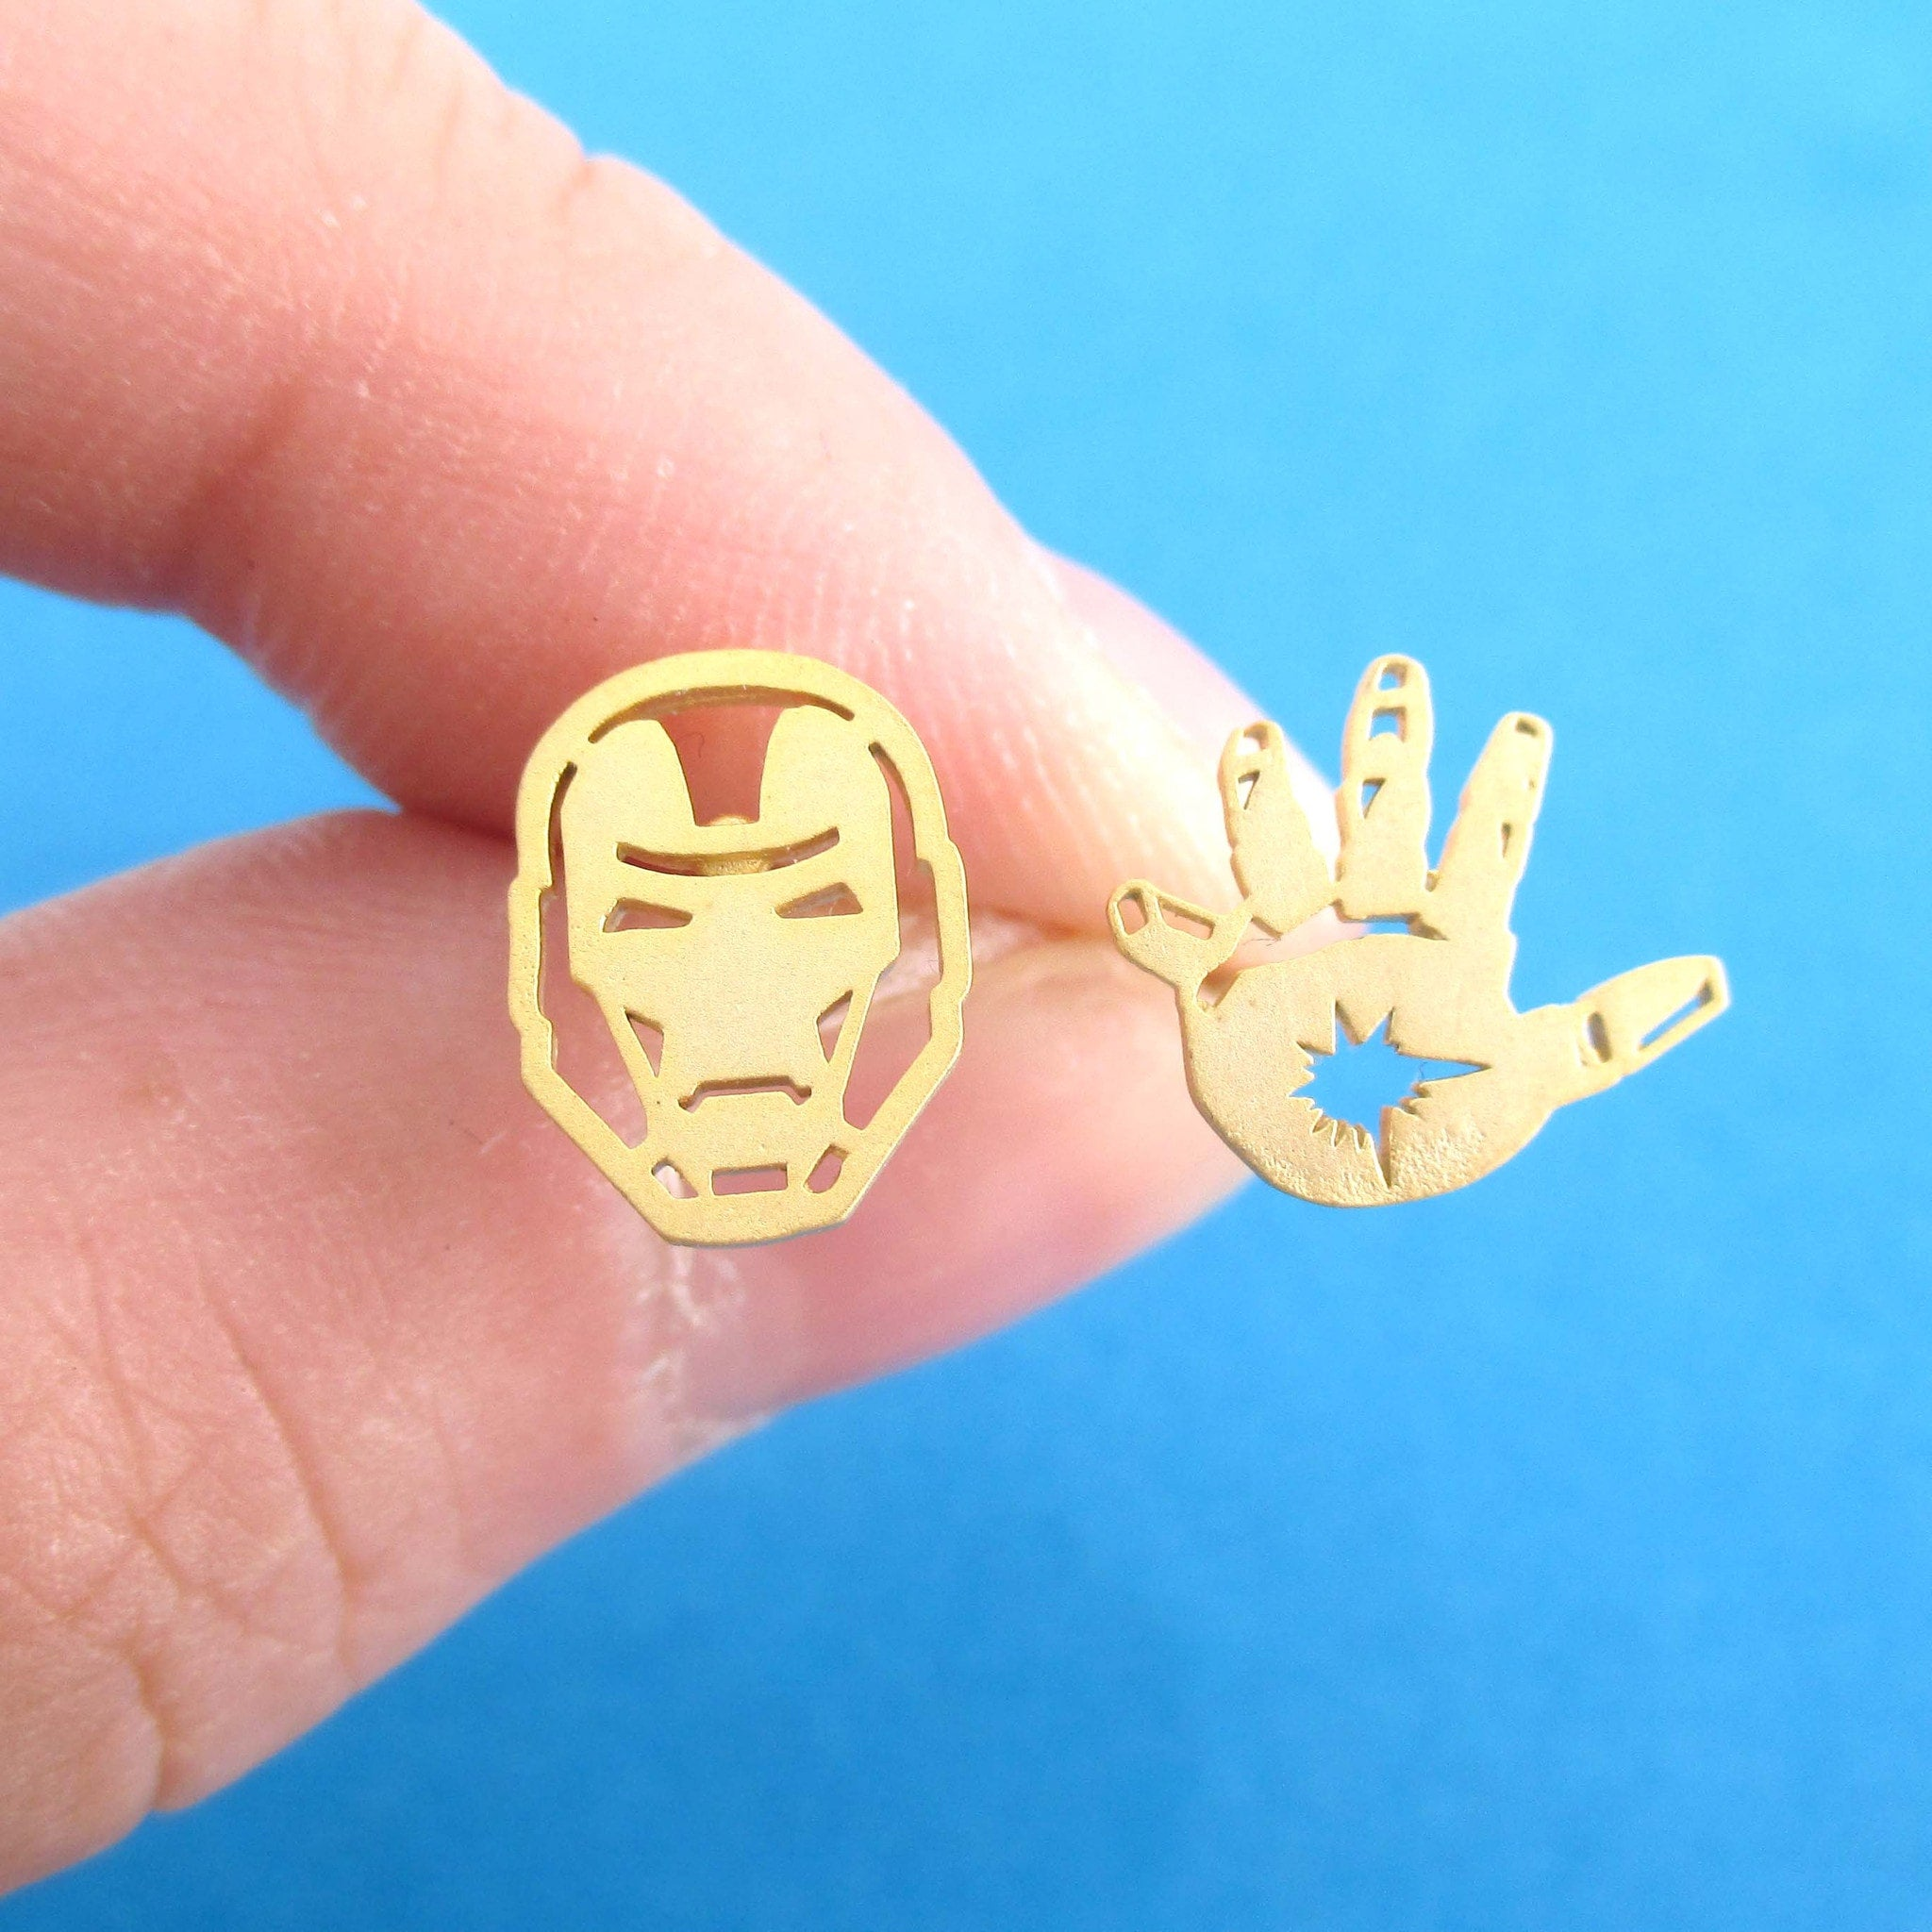 Iron Man Mask and Glove Shaped Stud Earrings in Gold